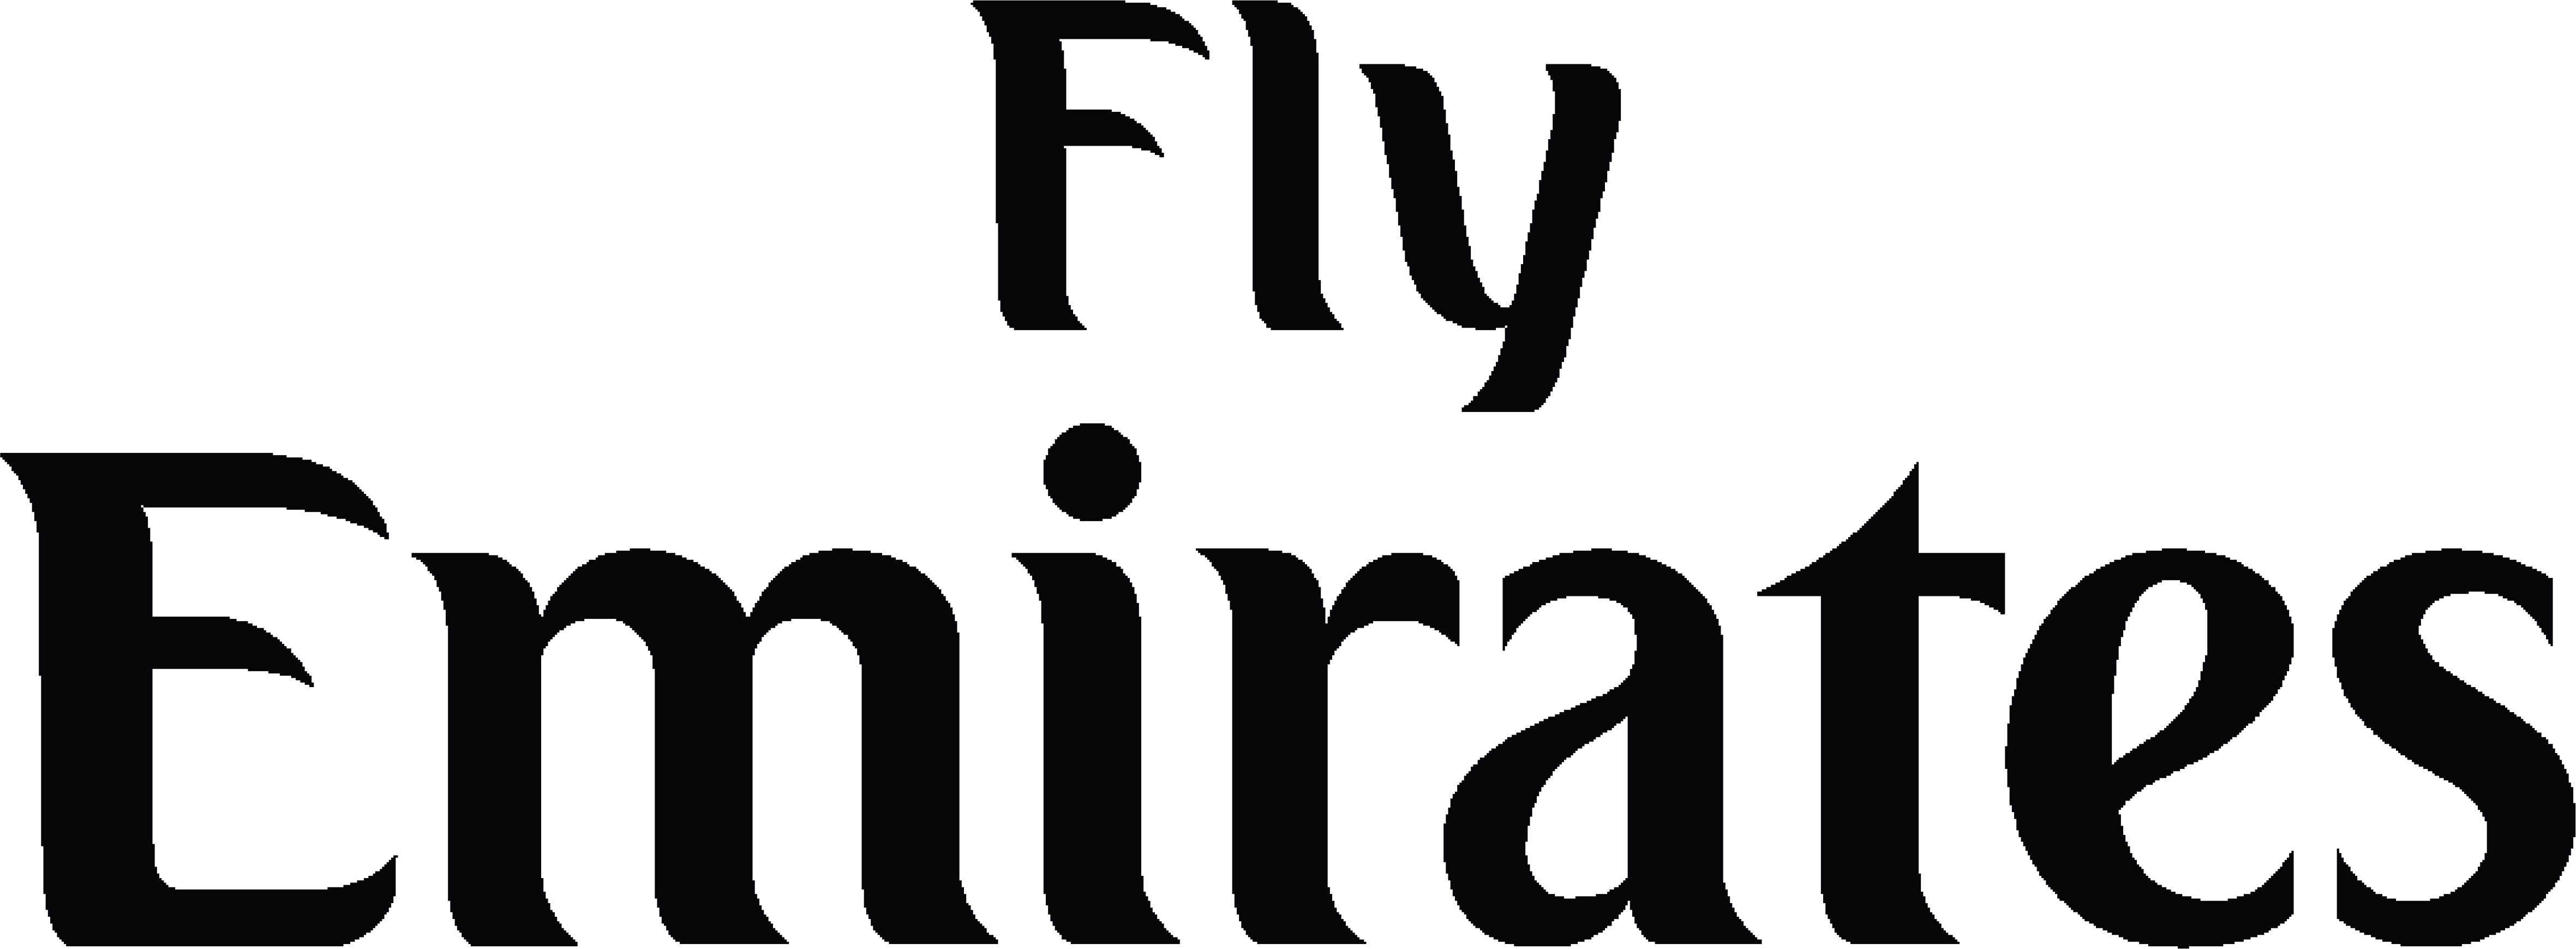 Fly emirates white logo png. The group dubai airshow